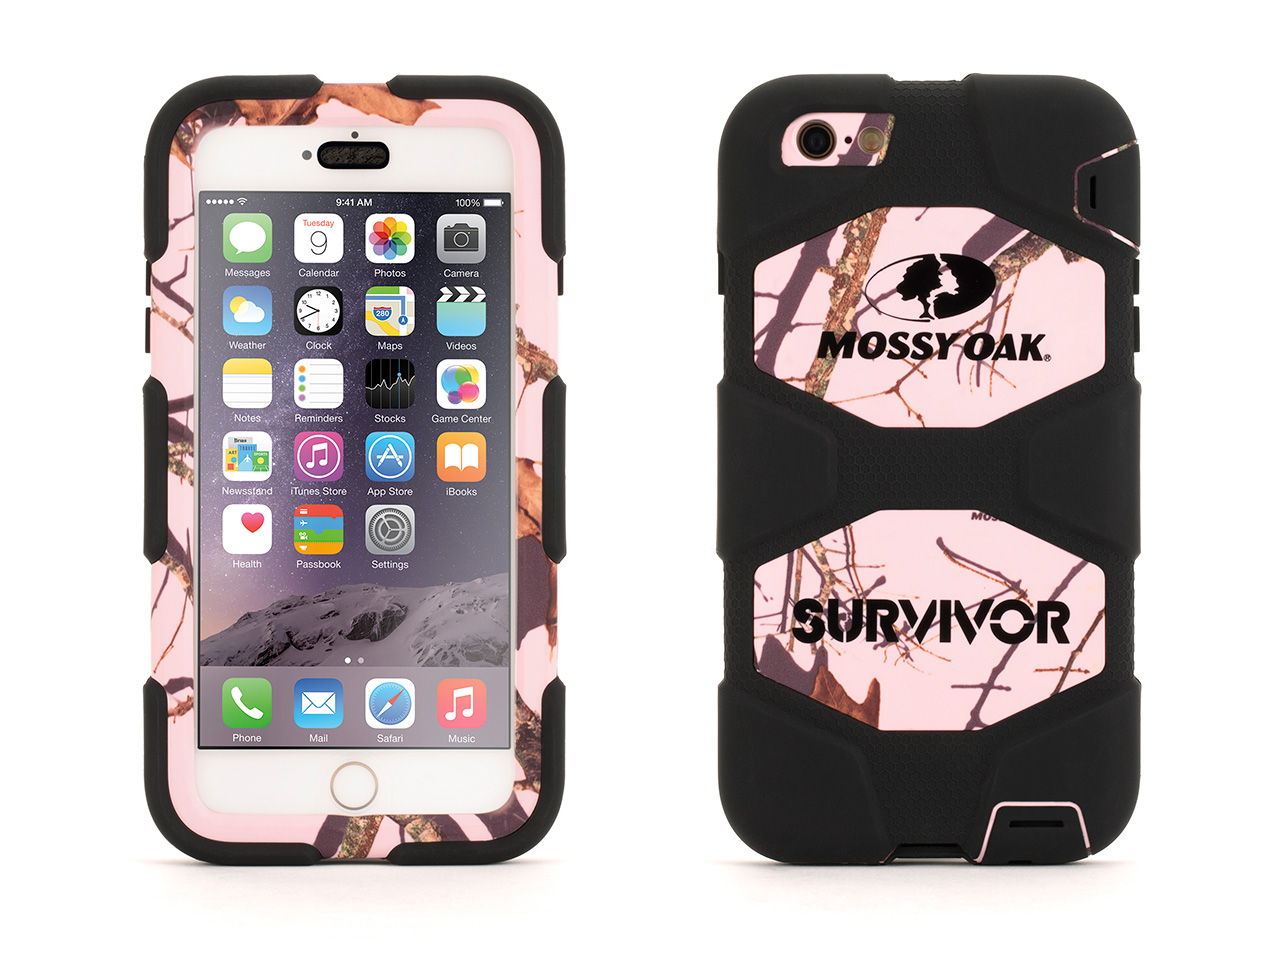 Griffin Survivor All-Terrain for iPhone 6 Plus, Mossy Oak, Mil-spec tested, real-world proven protection. In genuine... by Griffin Technology